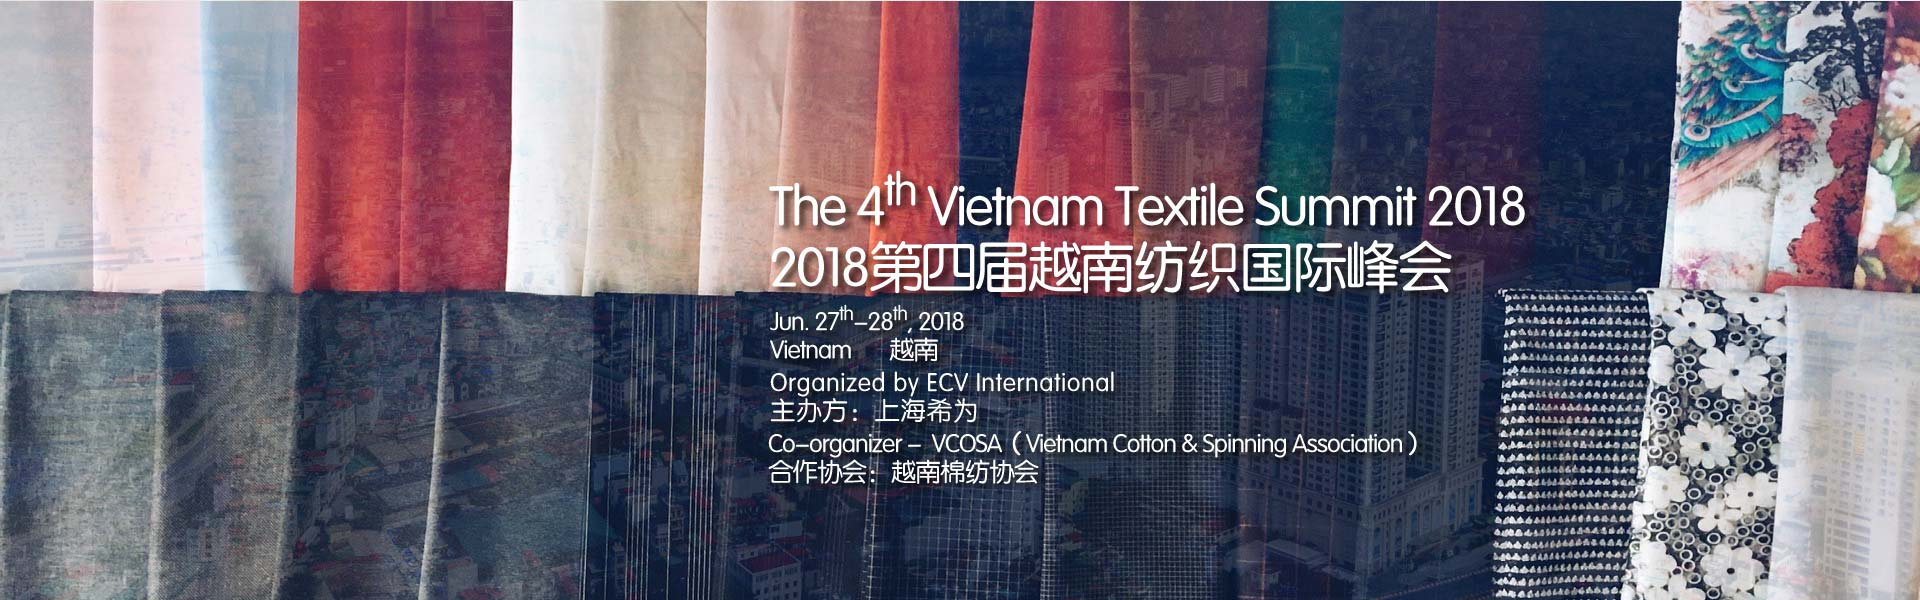 The 4th Vietnam Textile Summit 2018